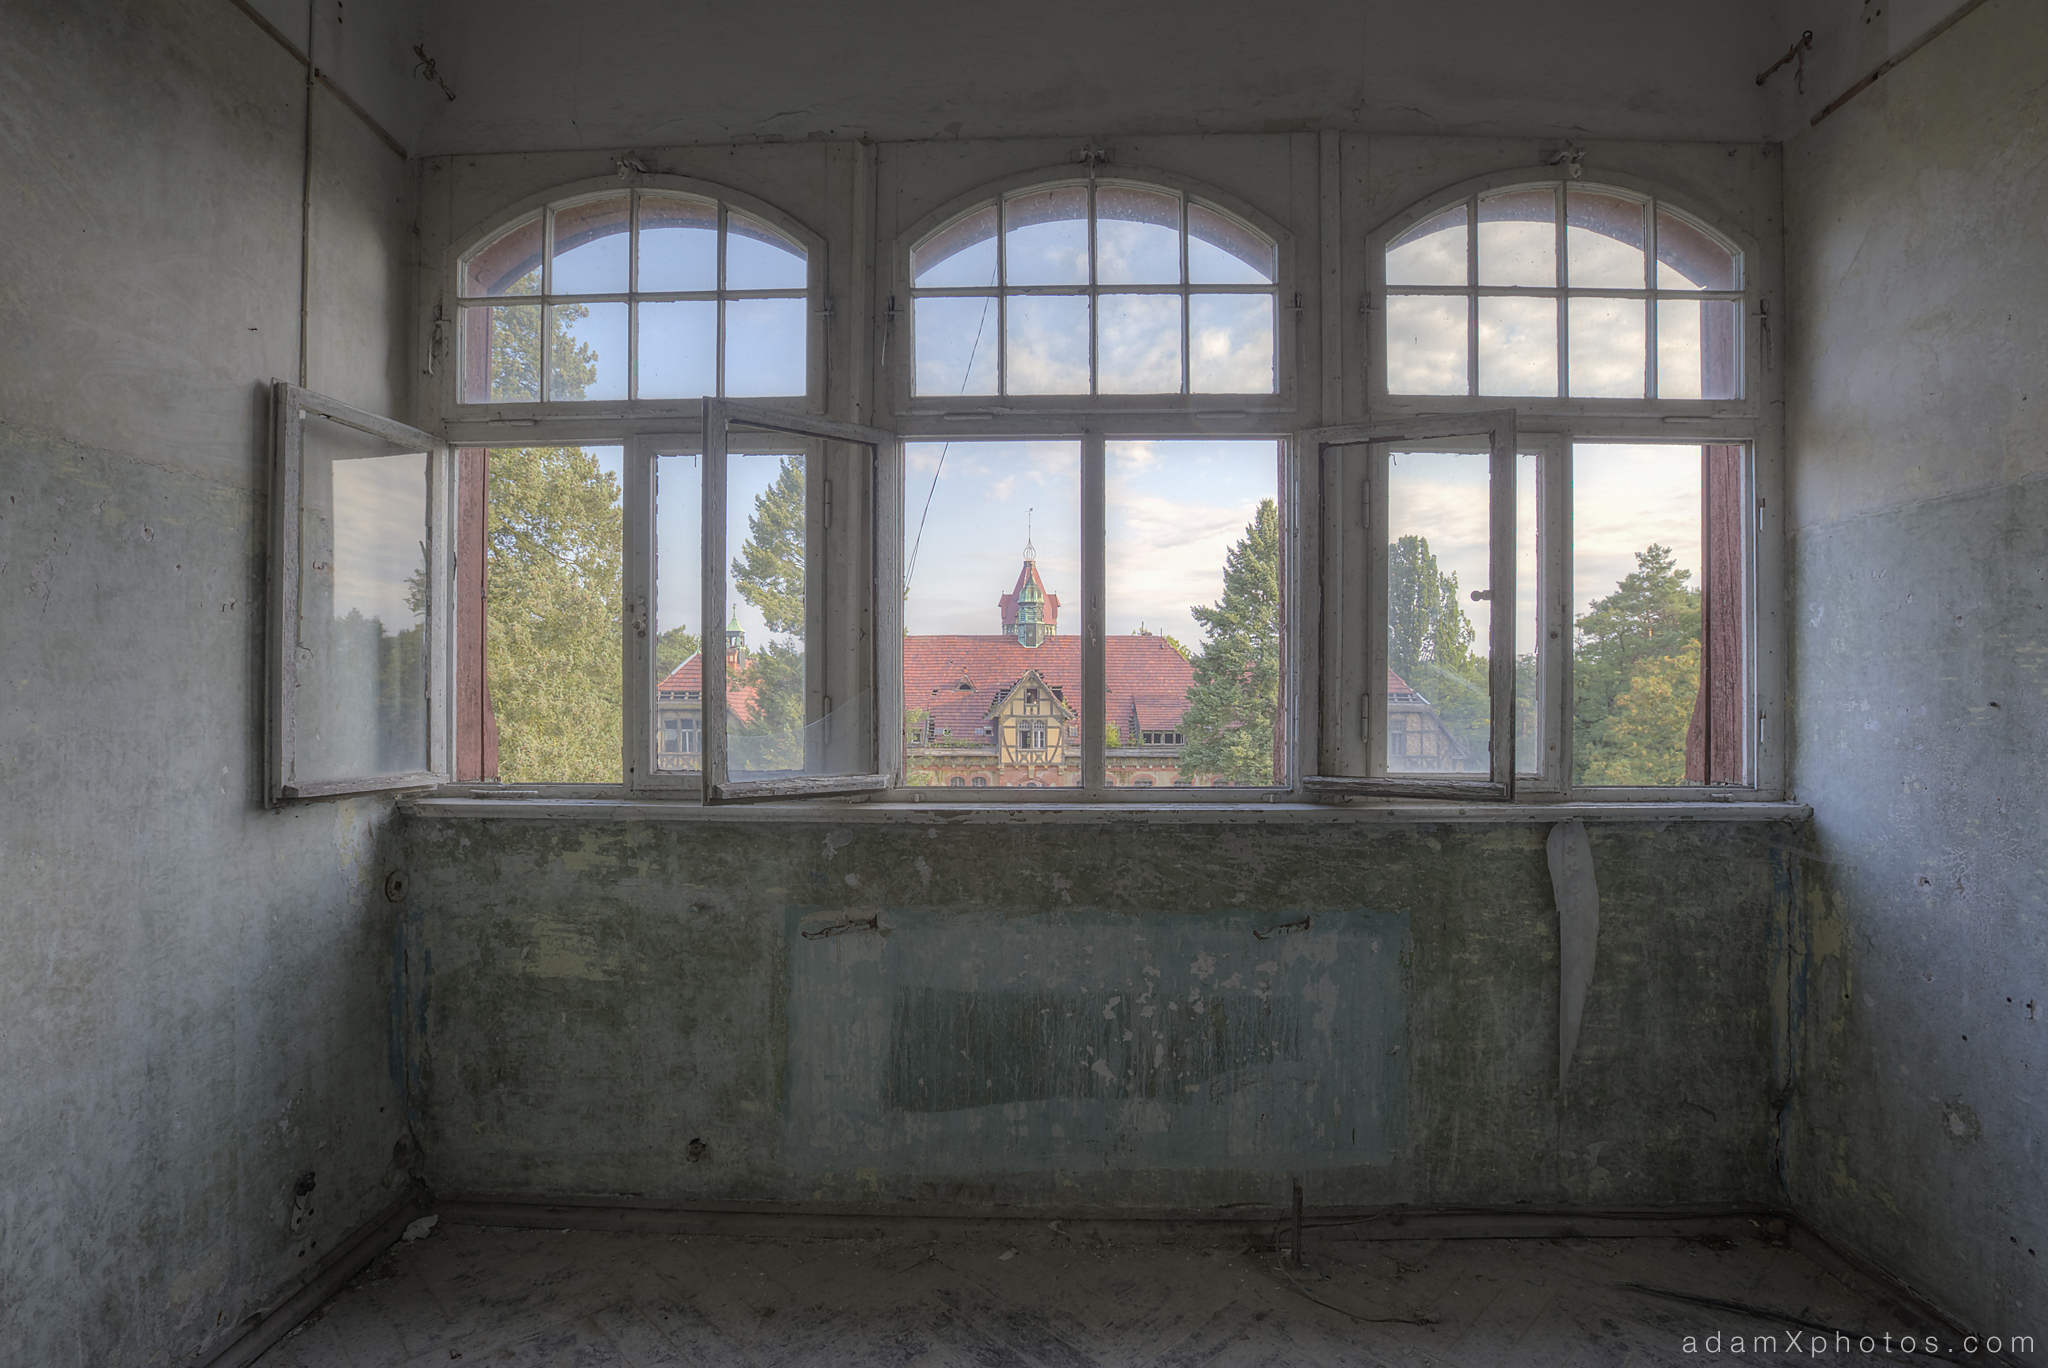 Adam X Urbex Beelitz Heilstatten Germany Urban Exploration Mens Men's Bathhouse Bath House Hospital Decay Lost Abandoned Hidden windows room paint outside external